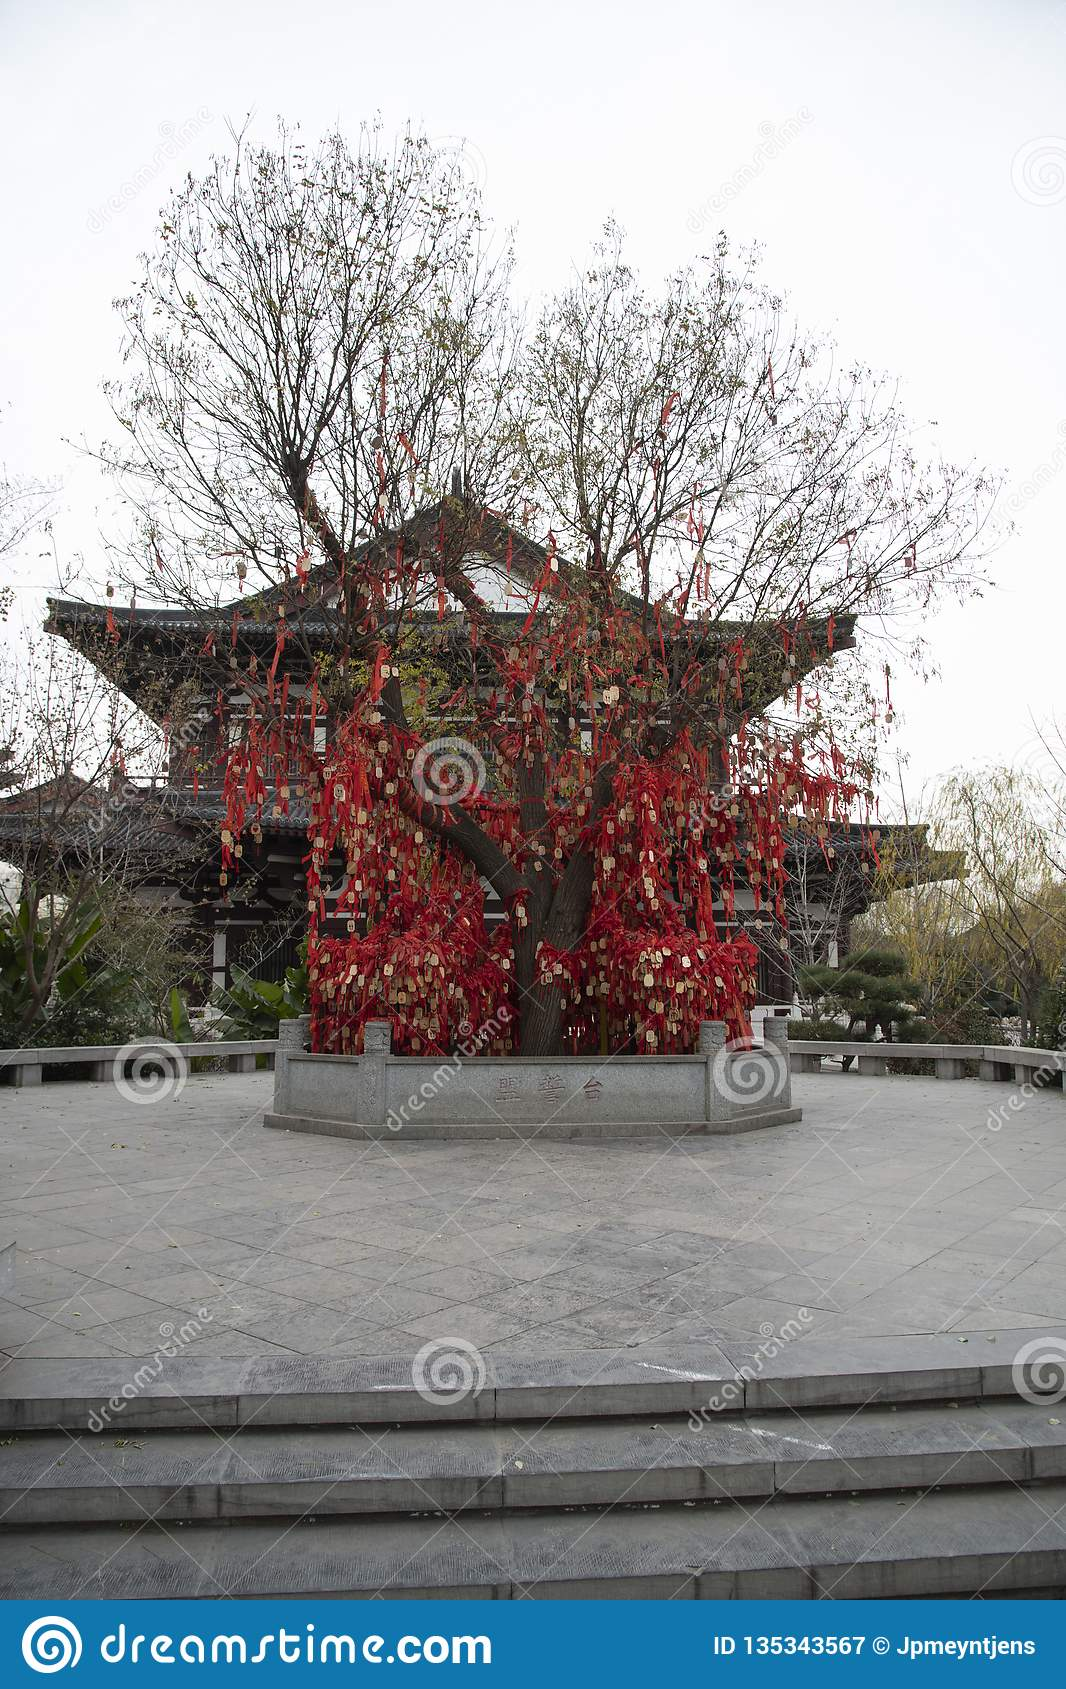 The Tree Of Eternal Love Promises In China,- Imagen